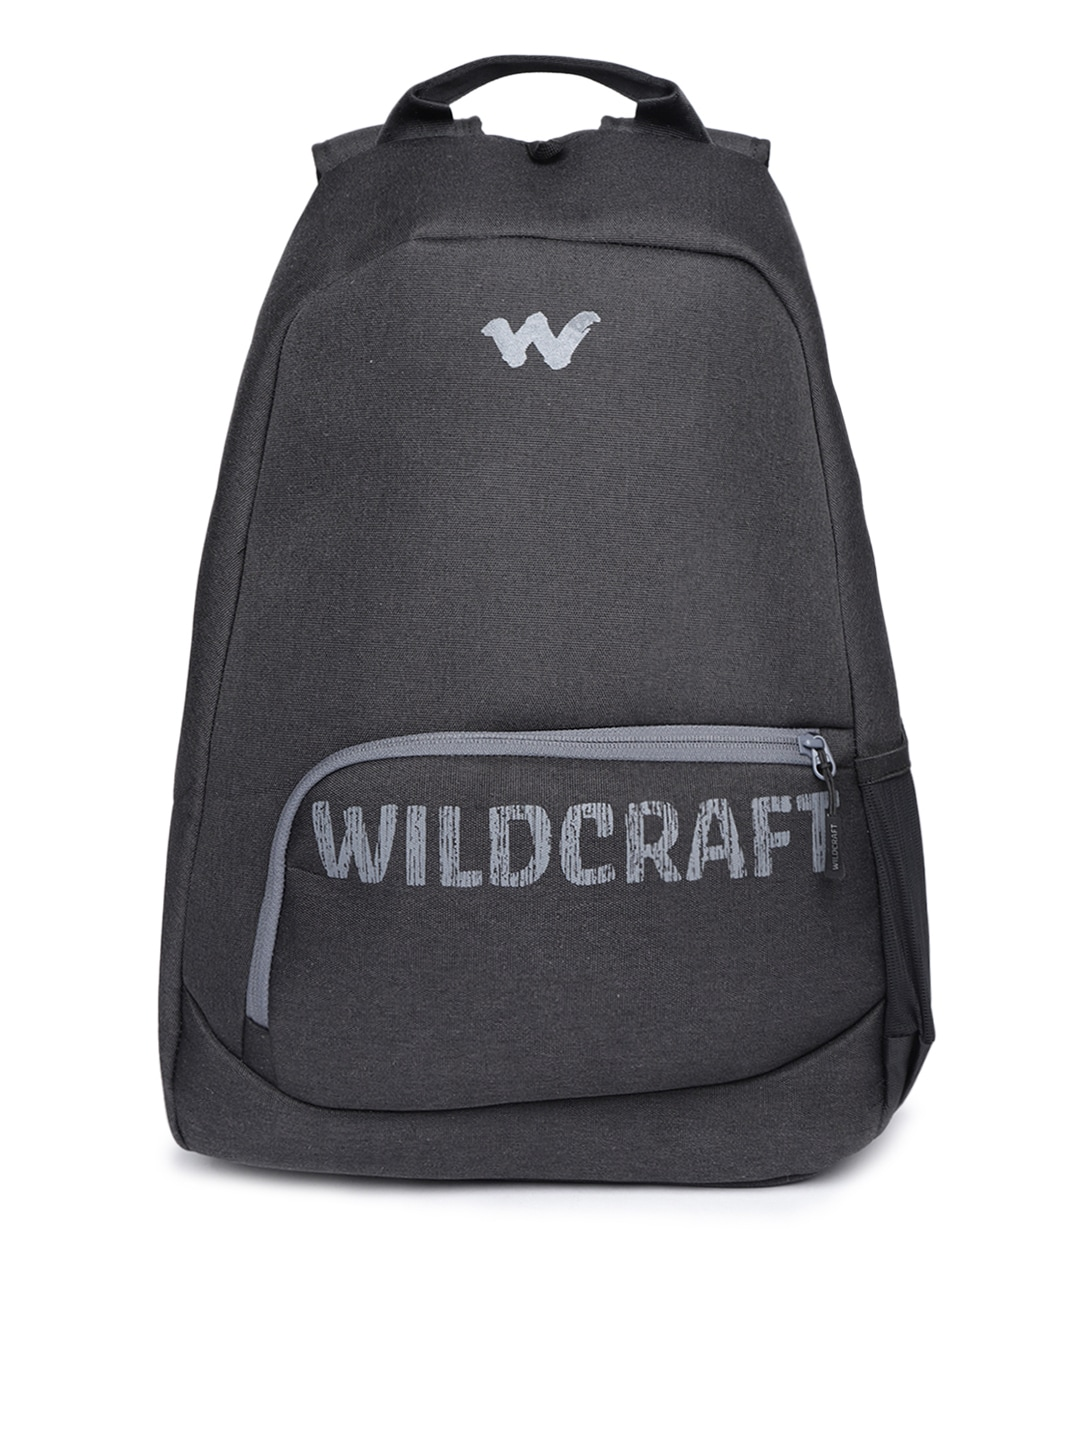 fbe9a55846 Women Accessories Bags Laptop Backpacks - Buy Women Accessories Bags Laptop  Backpacks online in India